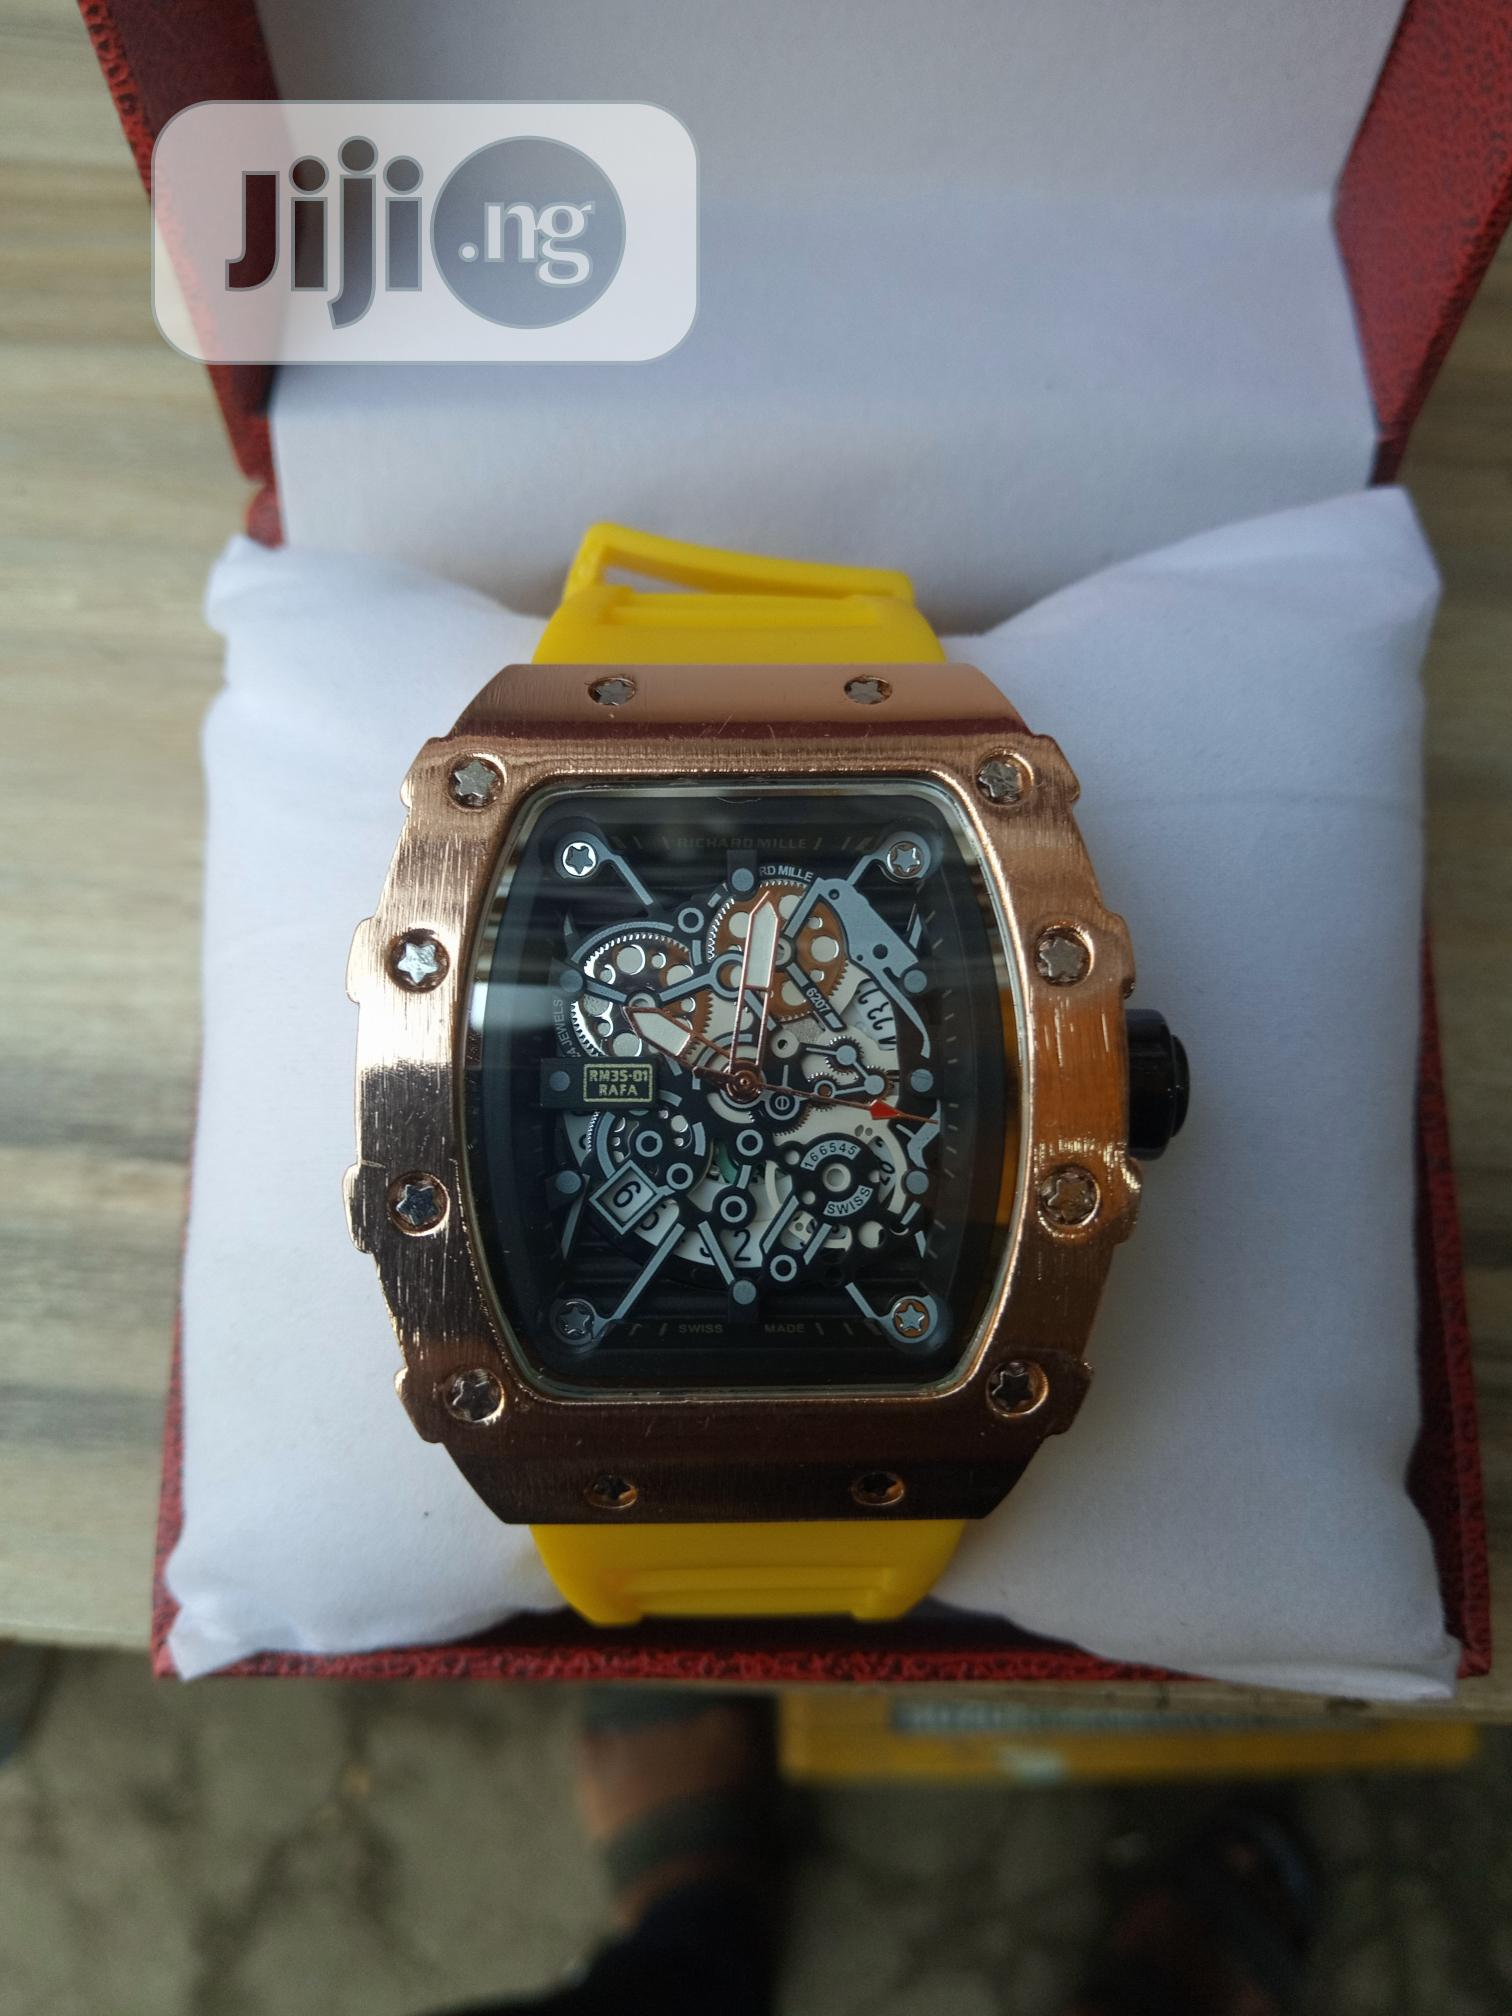 Richard Mille Men's Yellow Rubber Wristwatch | Watches for sale in Surulere, Lagos State, Nigeria